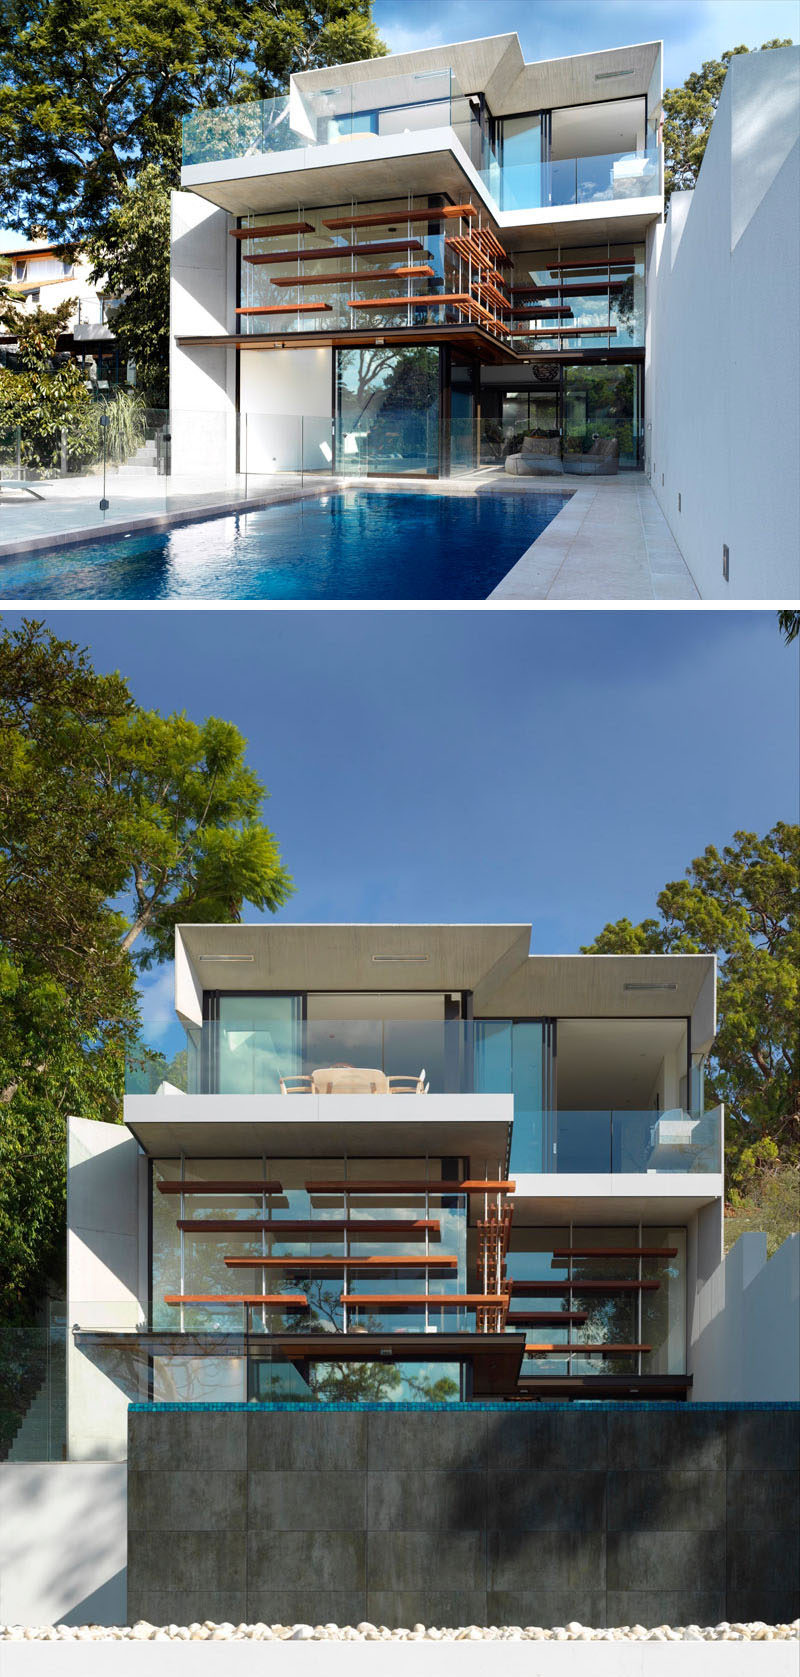 The outdoor area of this multi-level modern house, opens up to a waterfall edge pool with a glass safety fence that surrounds it.